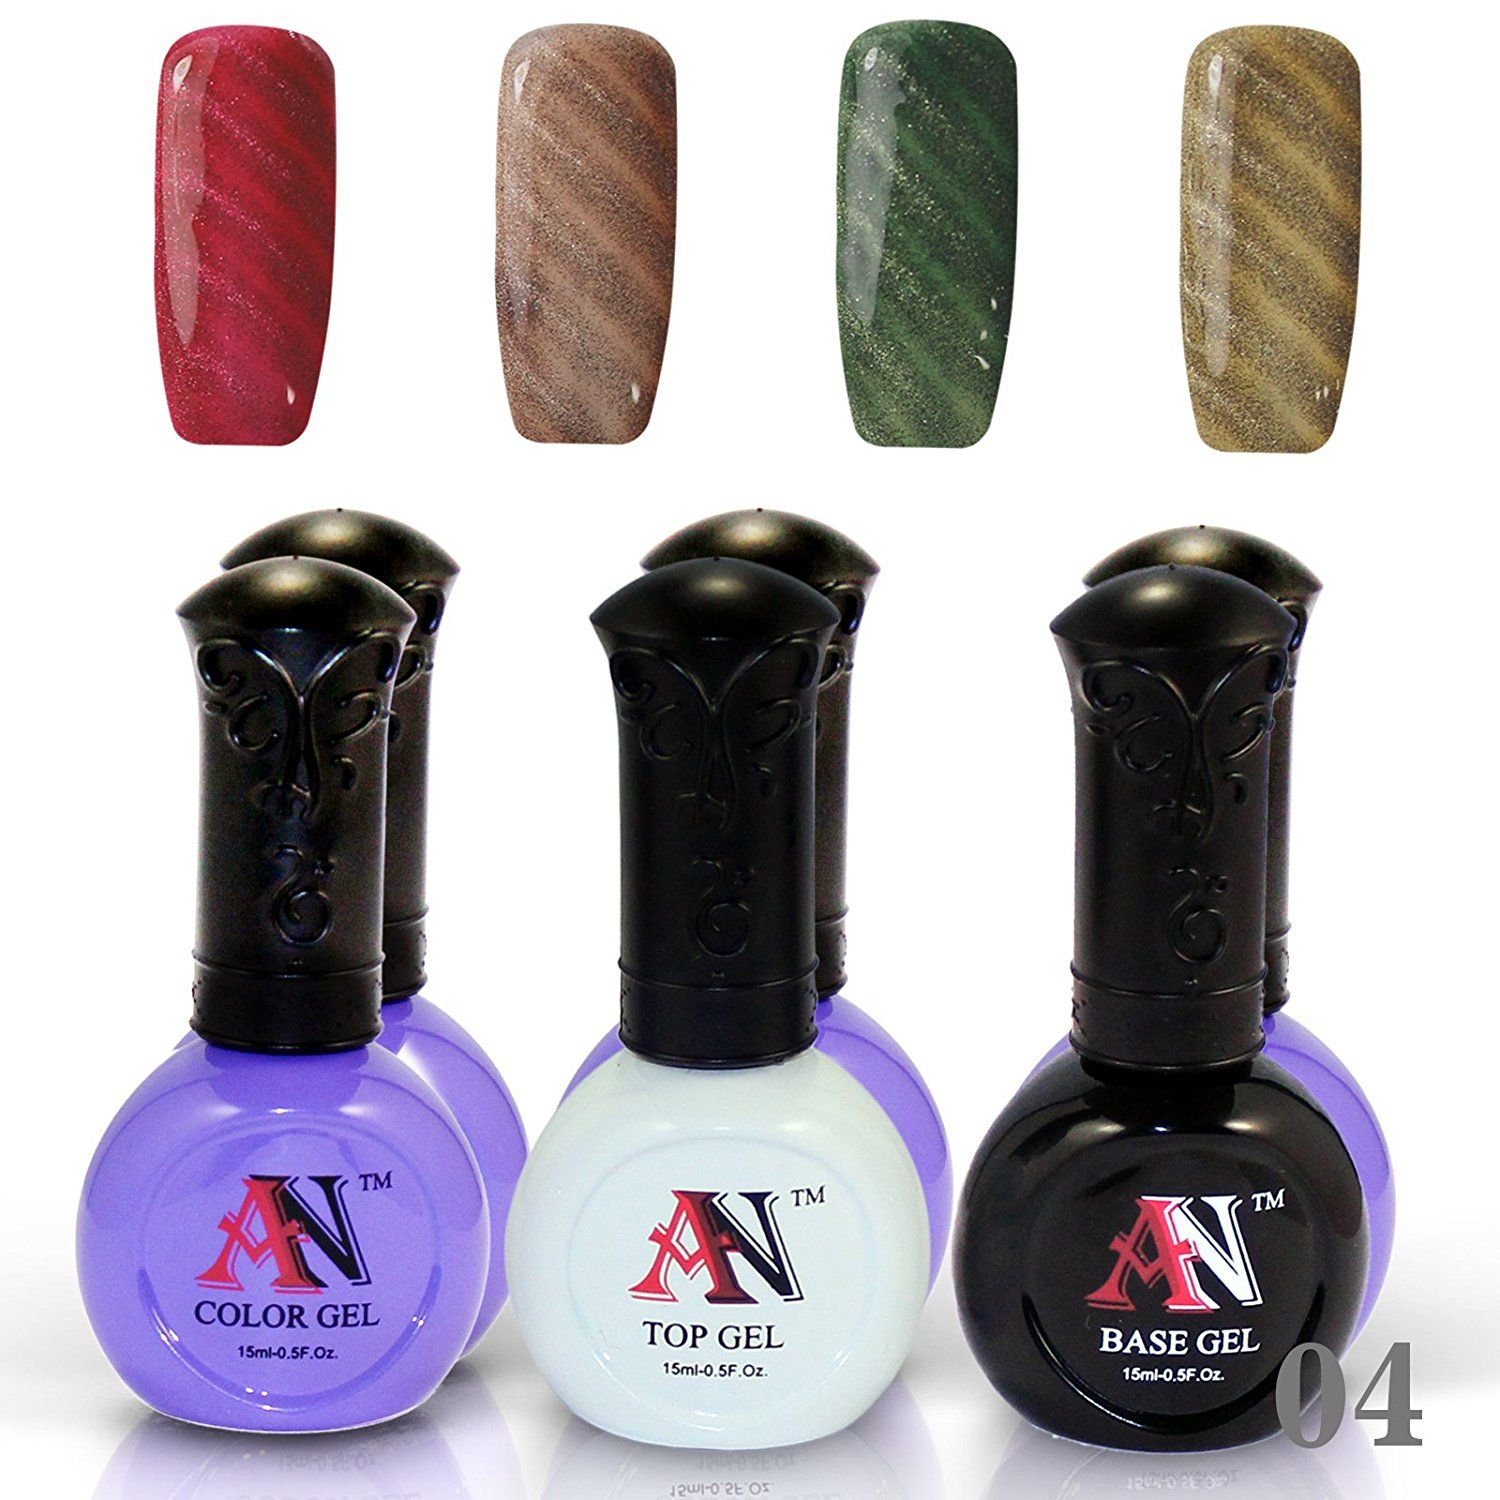 4 Pcs Magnetic Gel Nail Polish Top Coat And Base Coat Magnetic Rod Stick -4 *** Continue to the product at the image link.